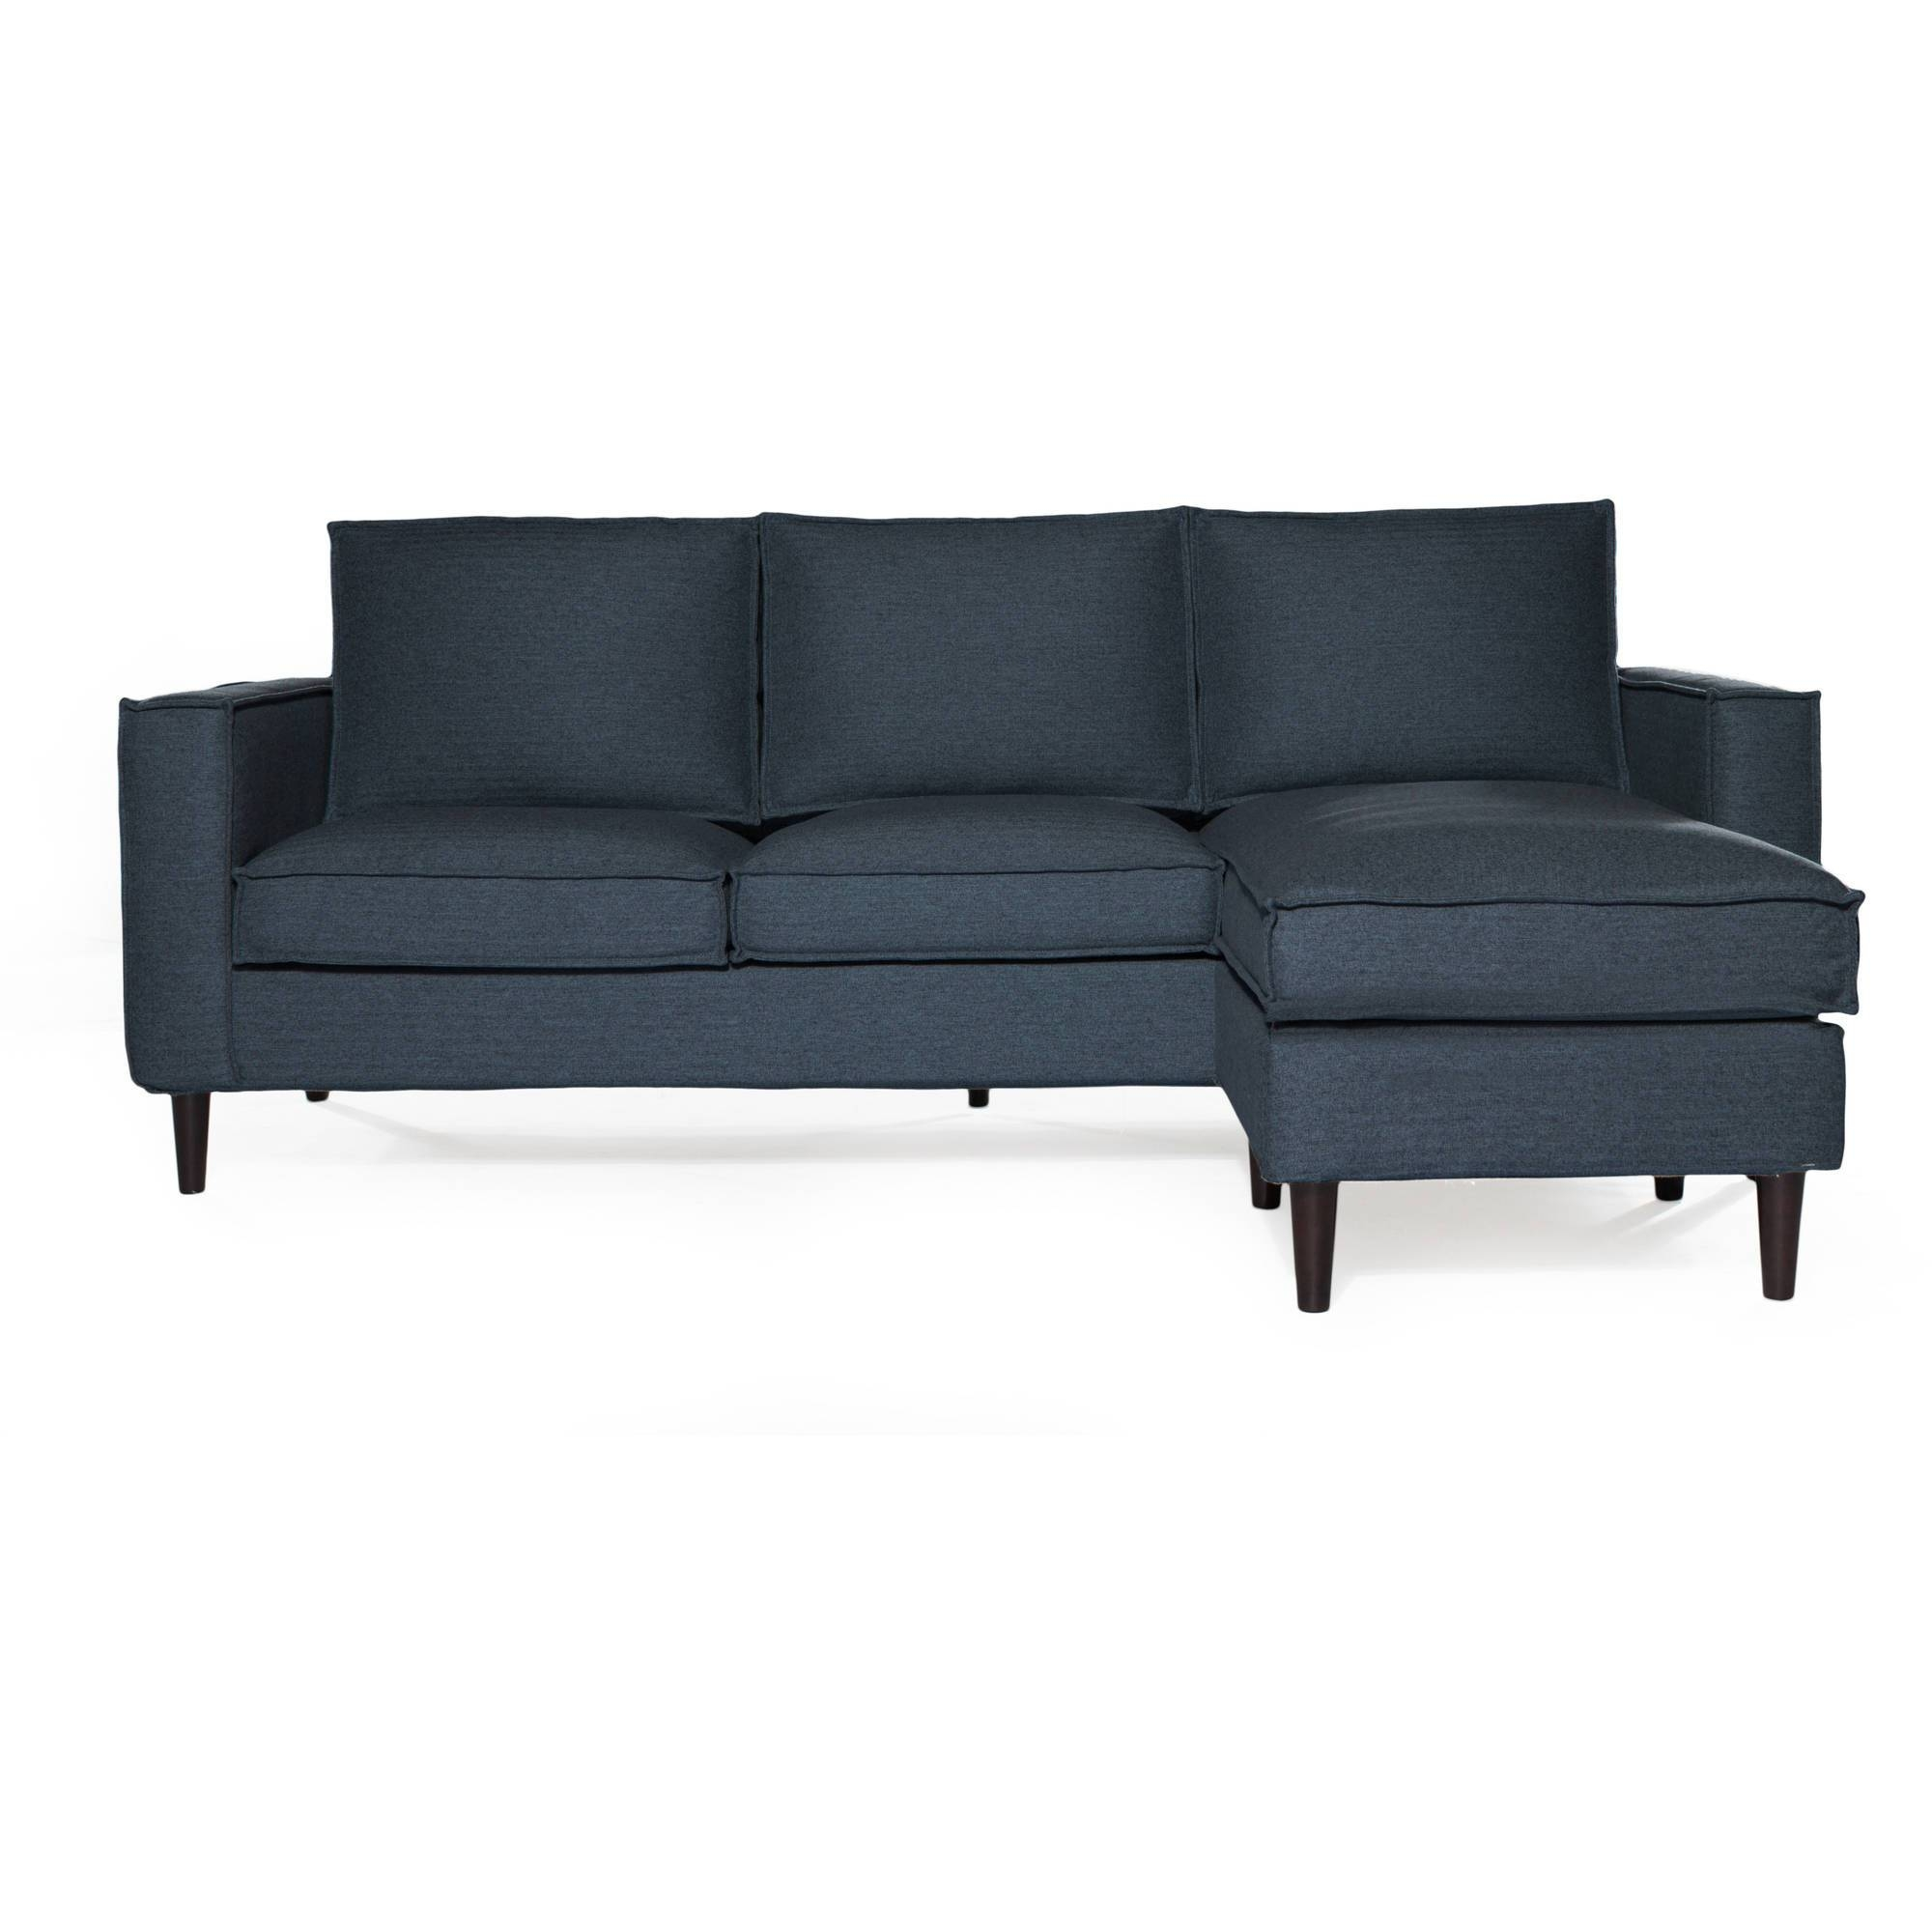 Sofas Center : Marvelous Sofander Images Inspirations Beds 300Sofa with regard to Armless Sectional Sofas (Image 26 of 30)